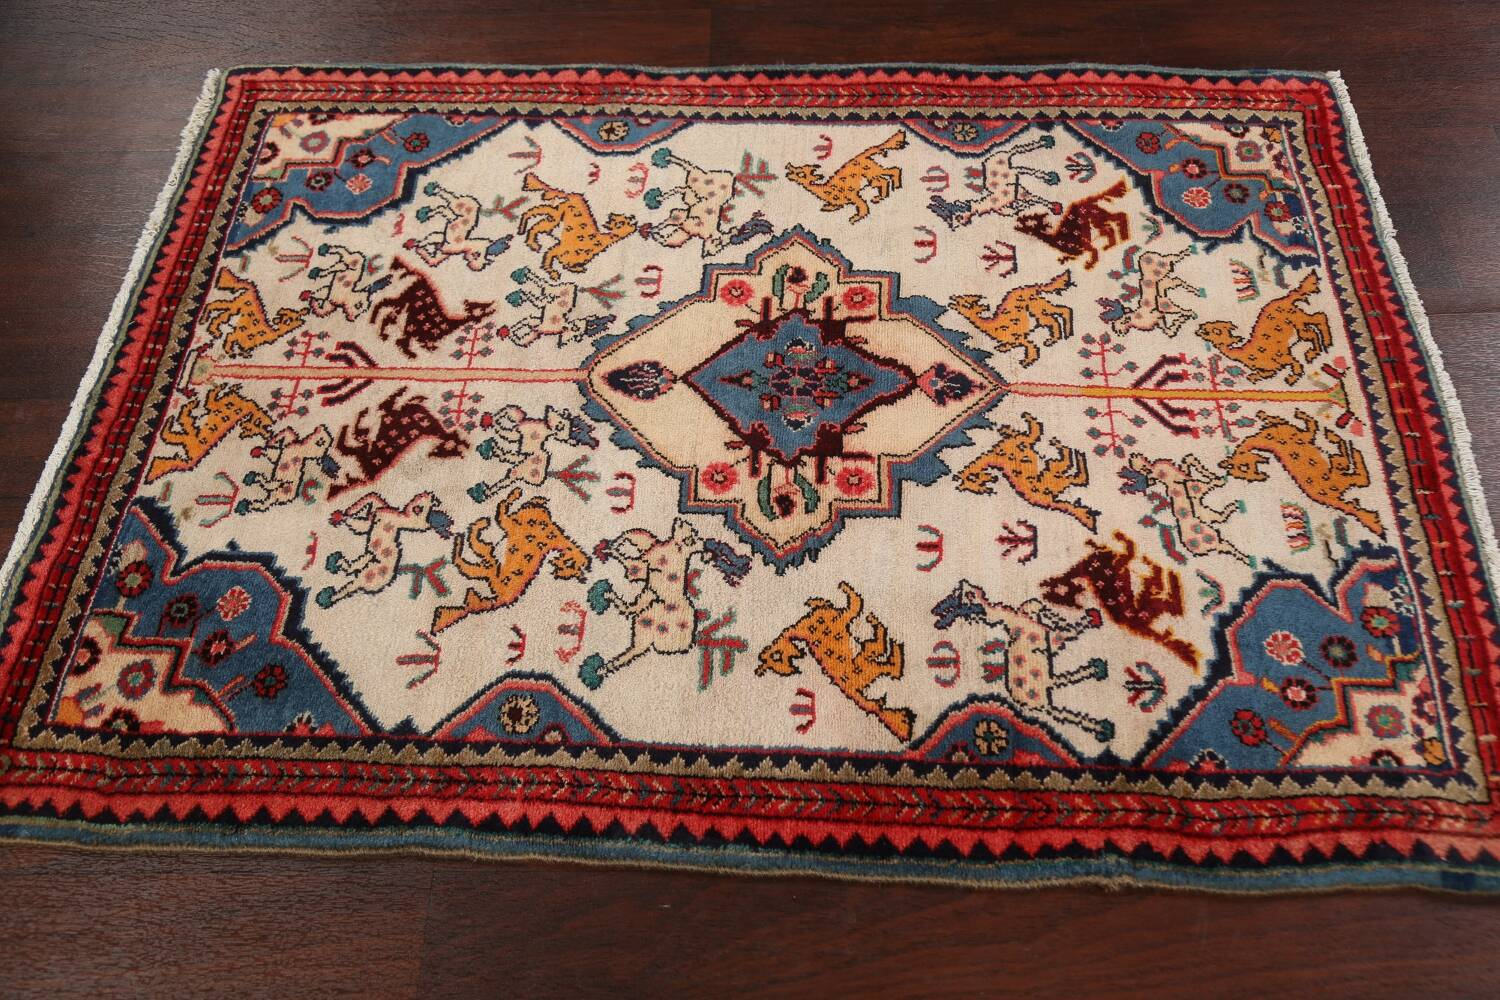 Animal Pictorial Vegetable Dye Senneh Persian Area Rug 3x5 image 13